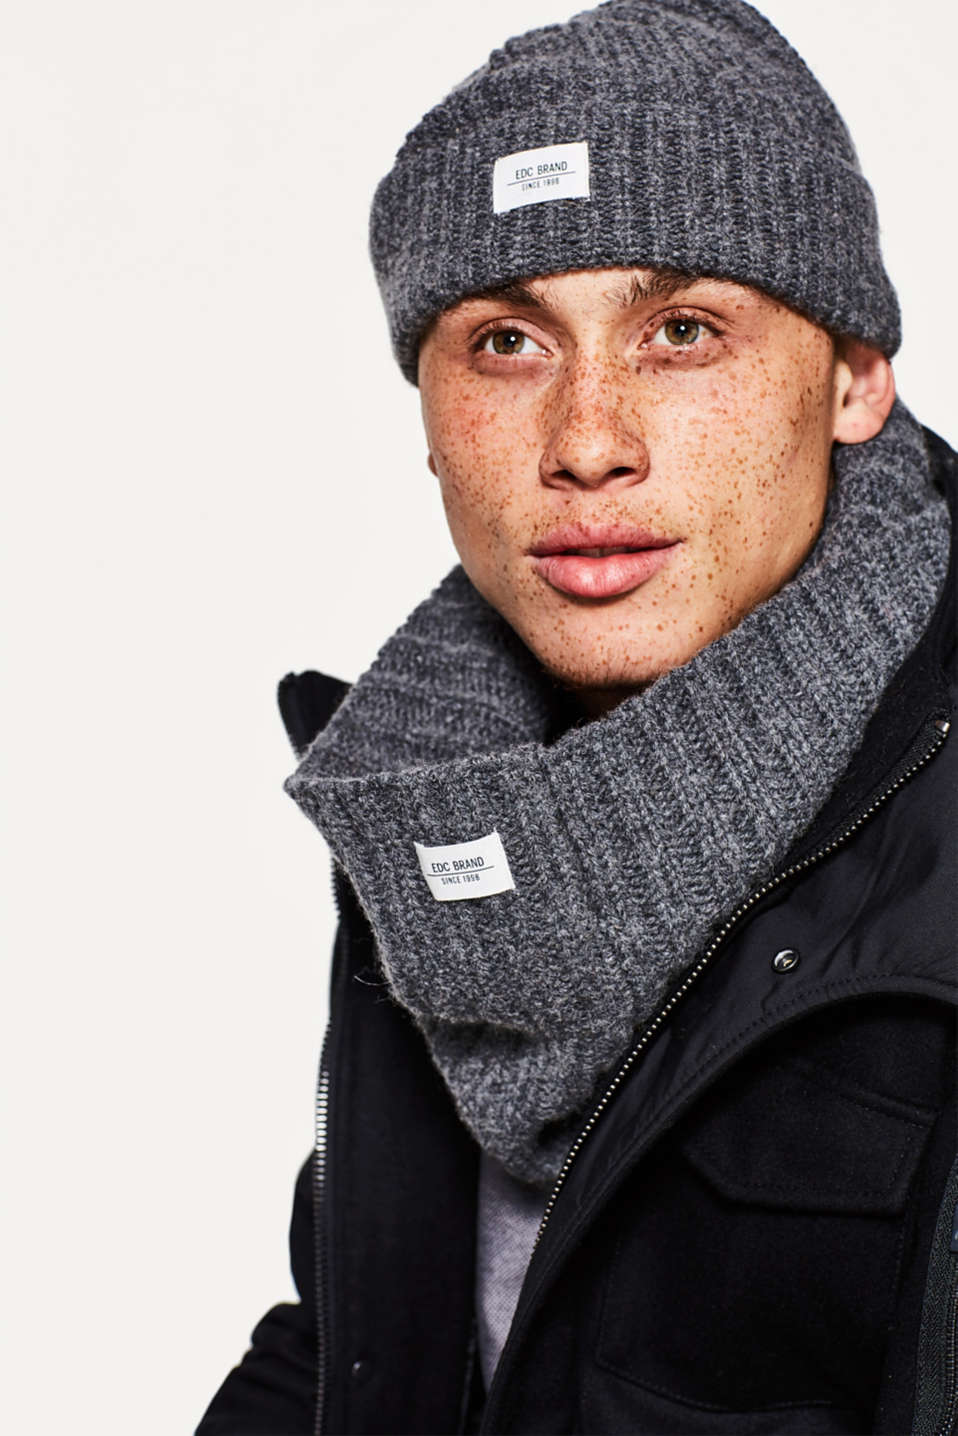 Snood with wool